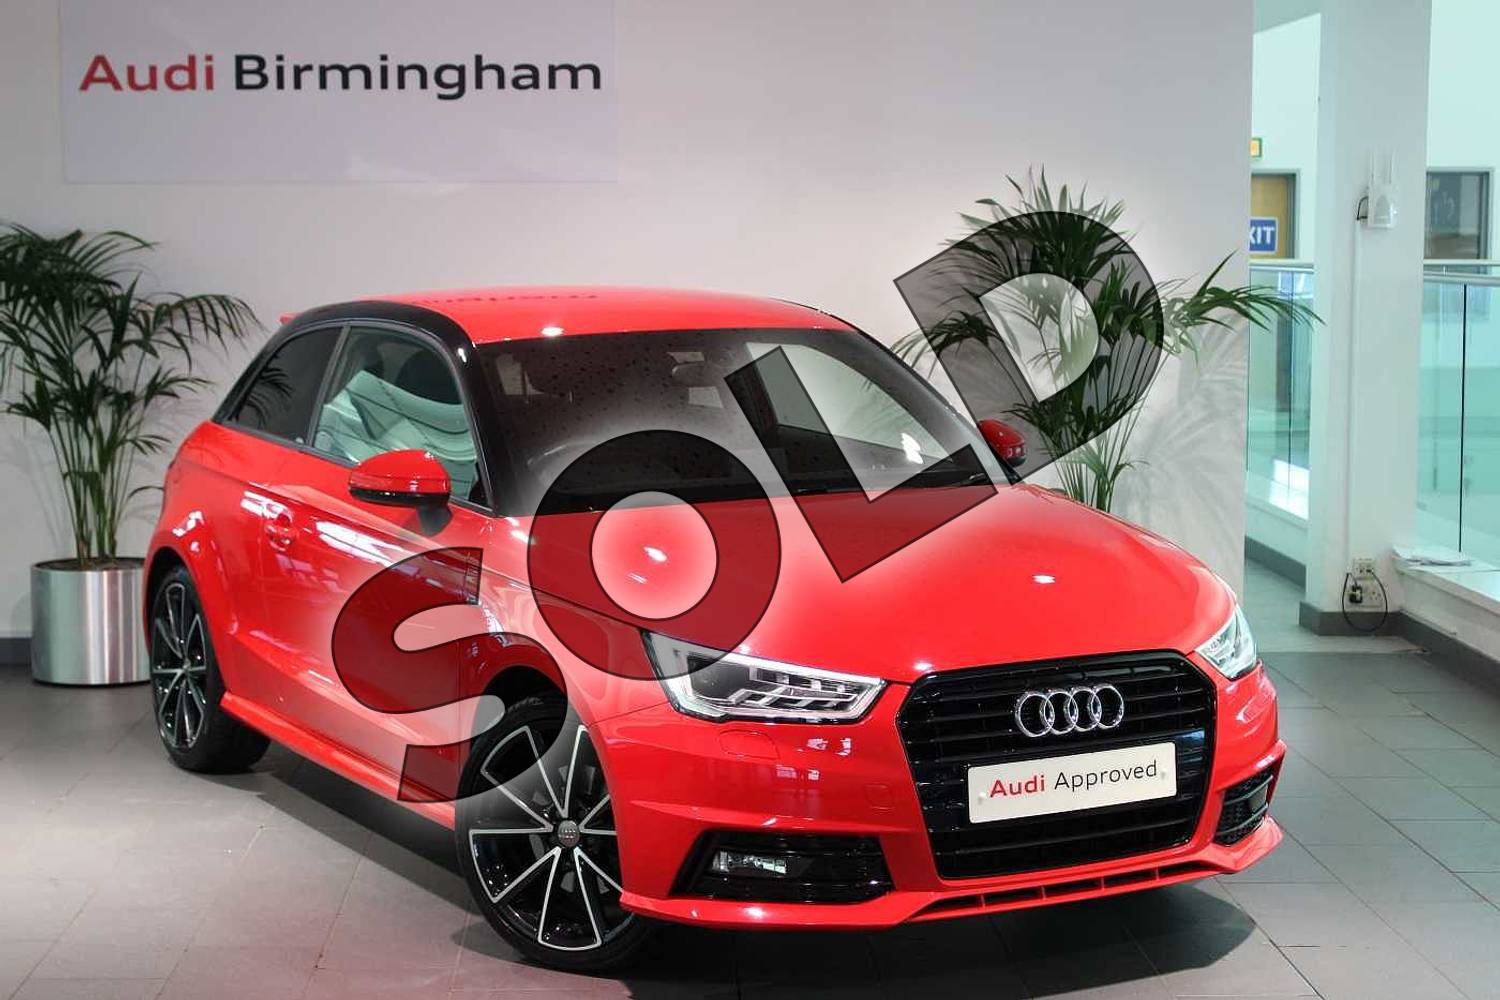 2016 Audi A1 Hatchback Special Editions 1.6 TDI Black Edition 3dr in Misano Red Pearlescent at Birmingham Audi